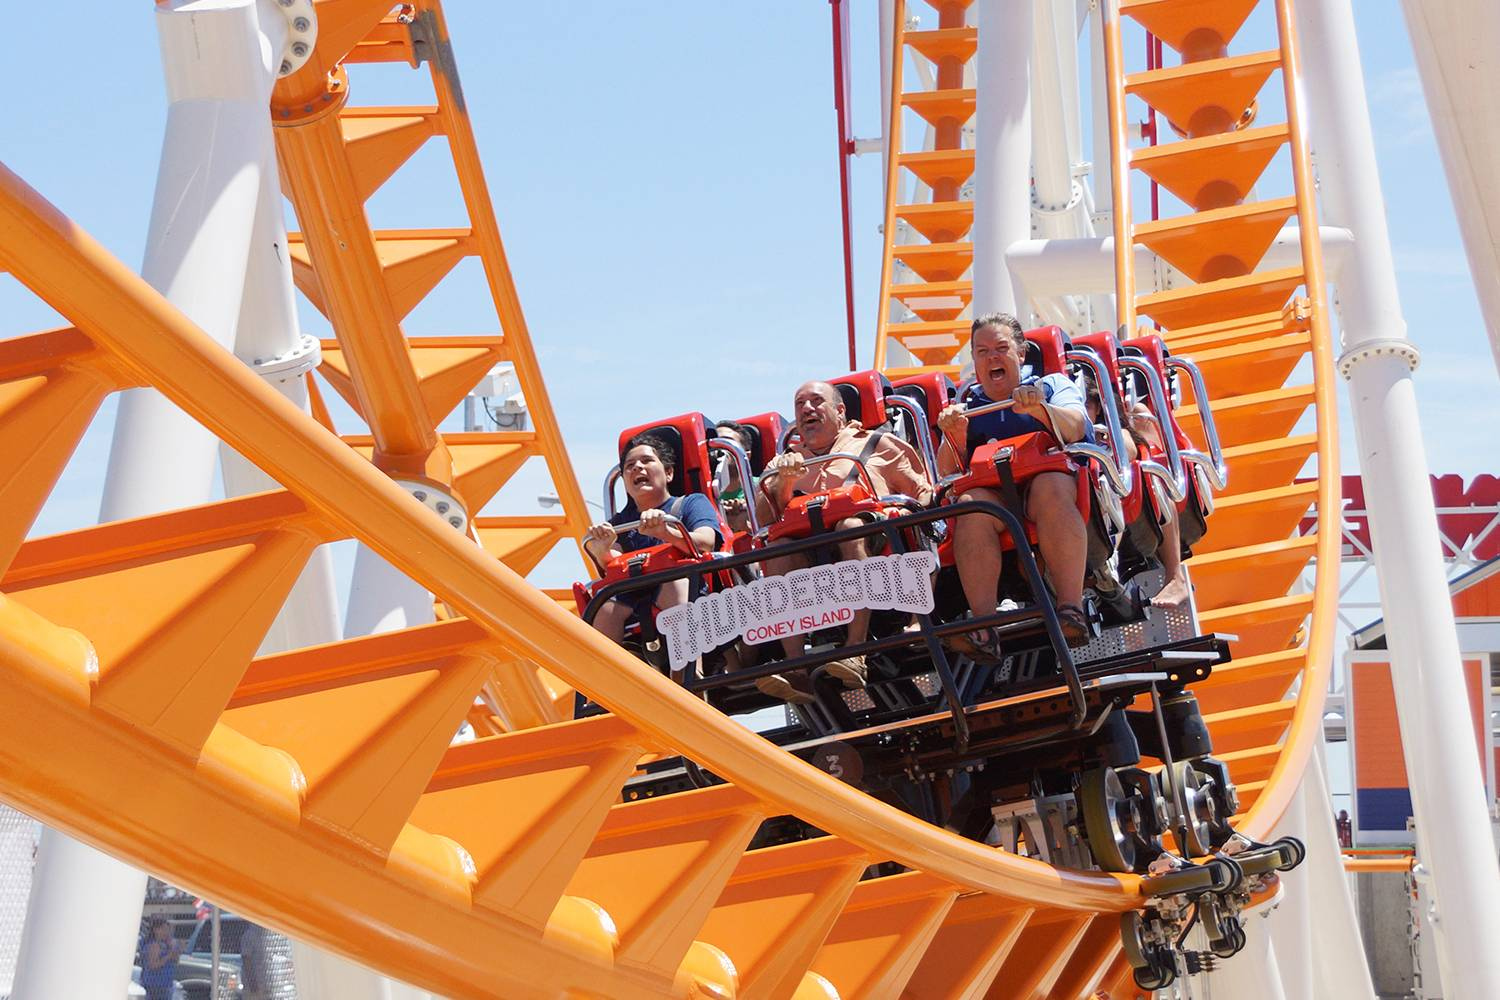 Thunderbolt rollercoaster at Luna Park in Coney Island Brooklyn